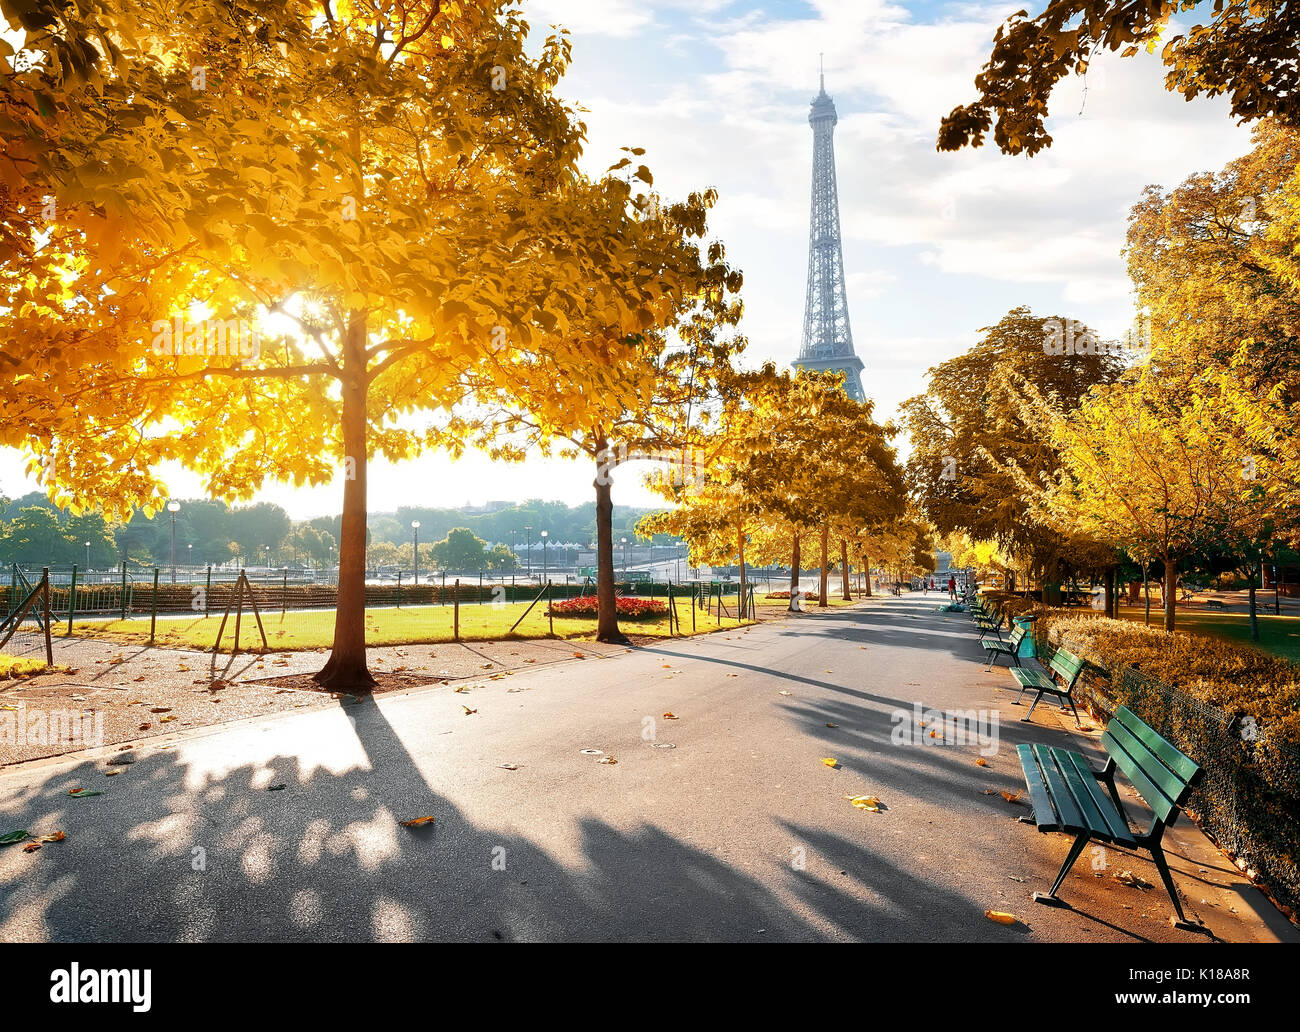 Sunny morning and Eiffel Tower in autumn, Paris, France - Stock Image